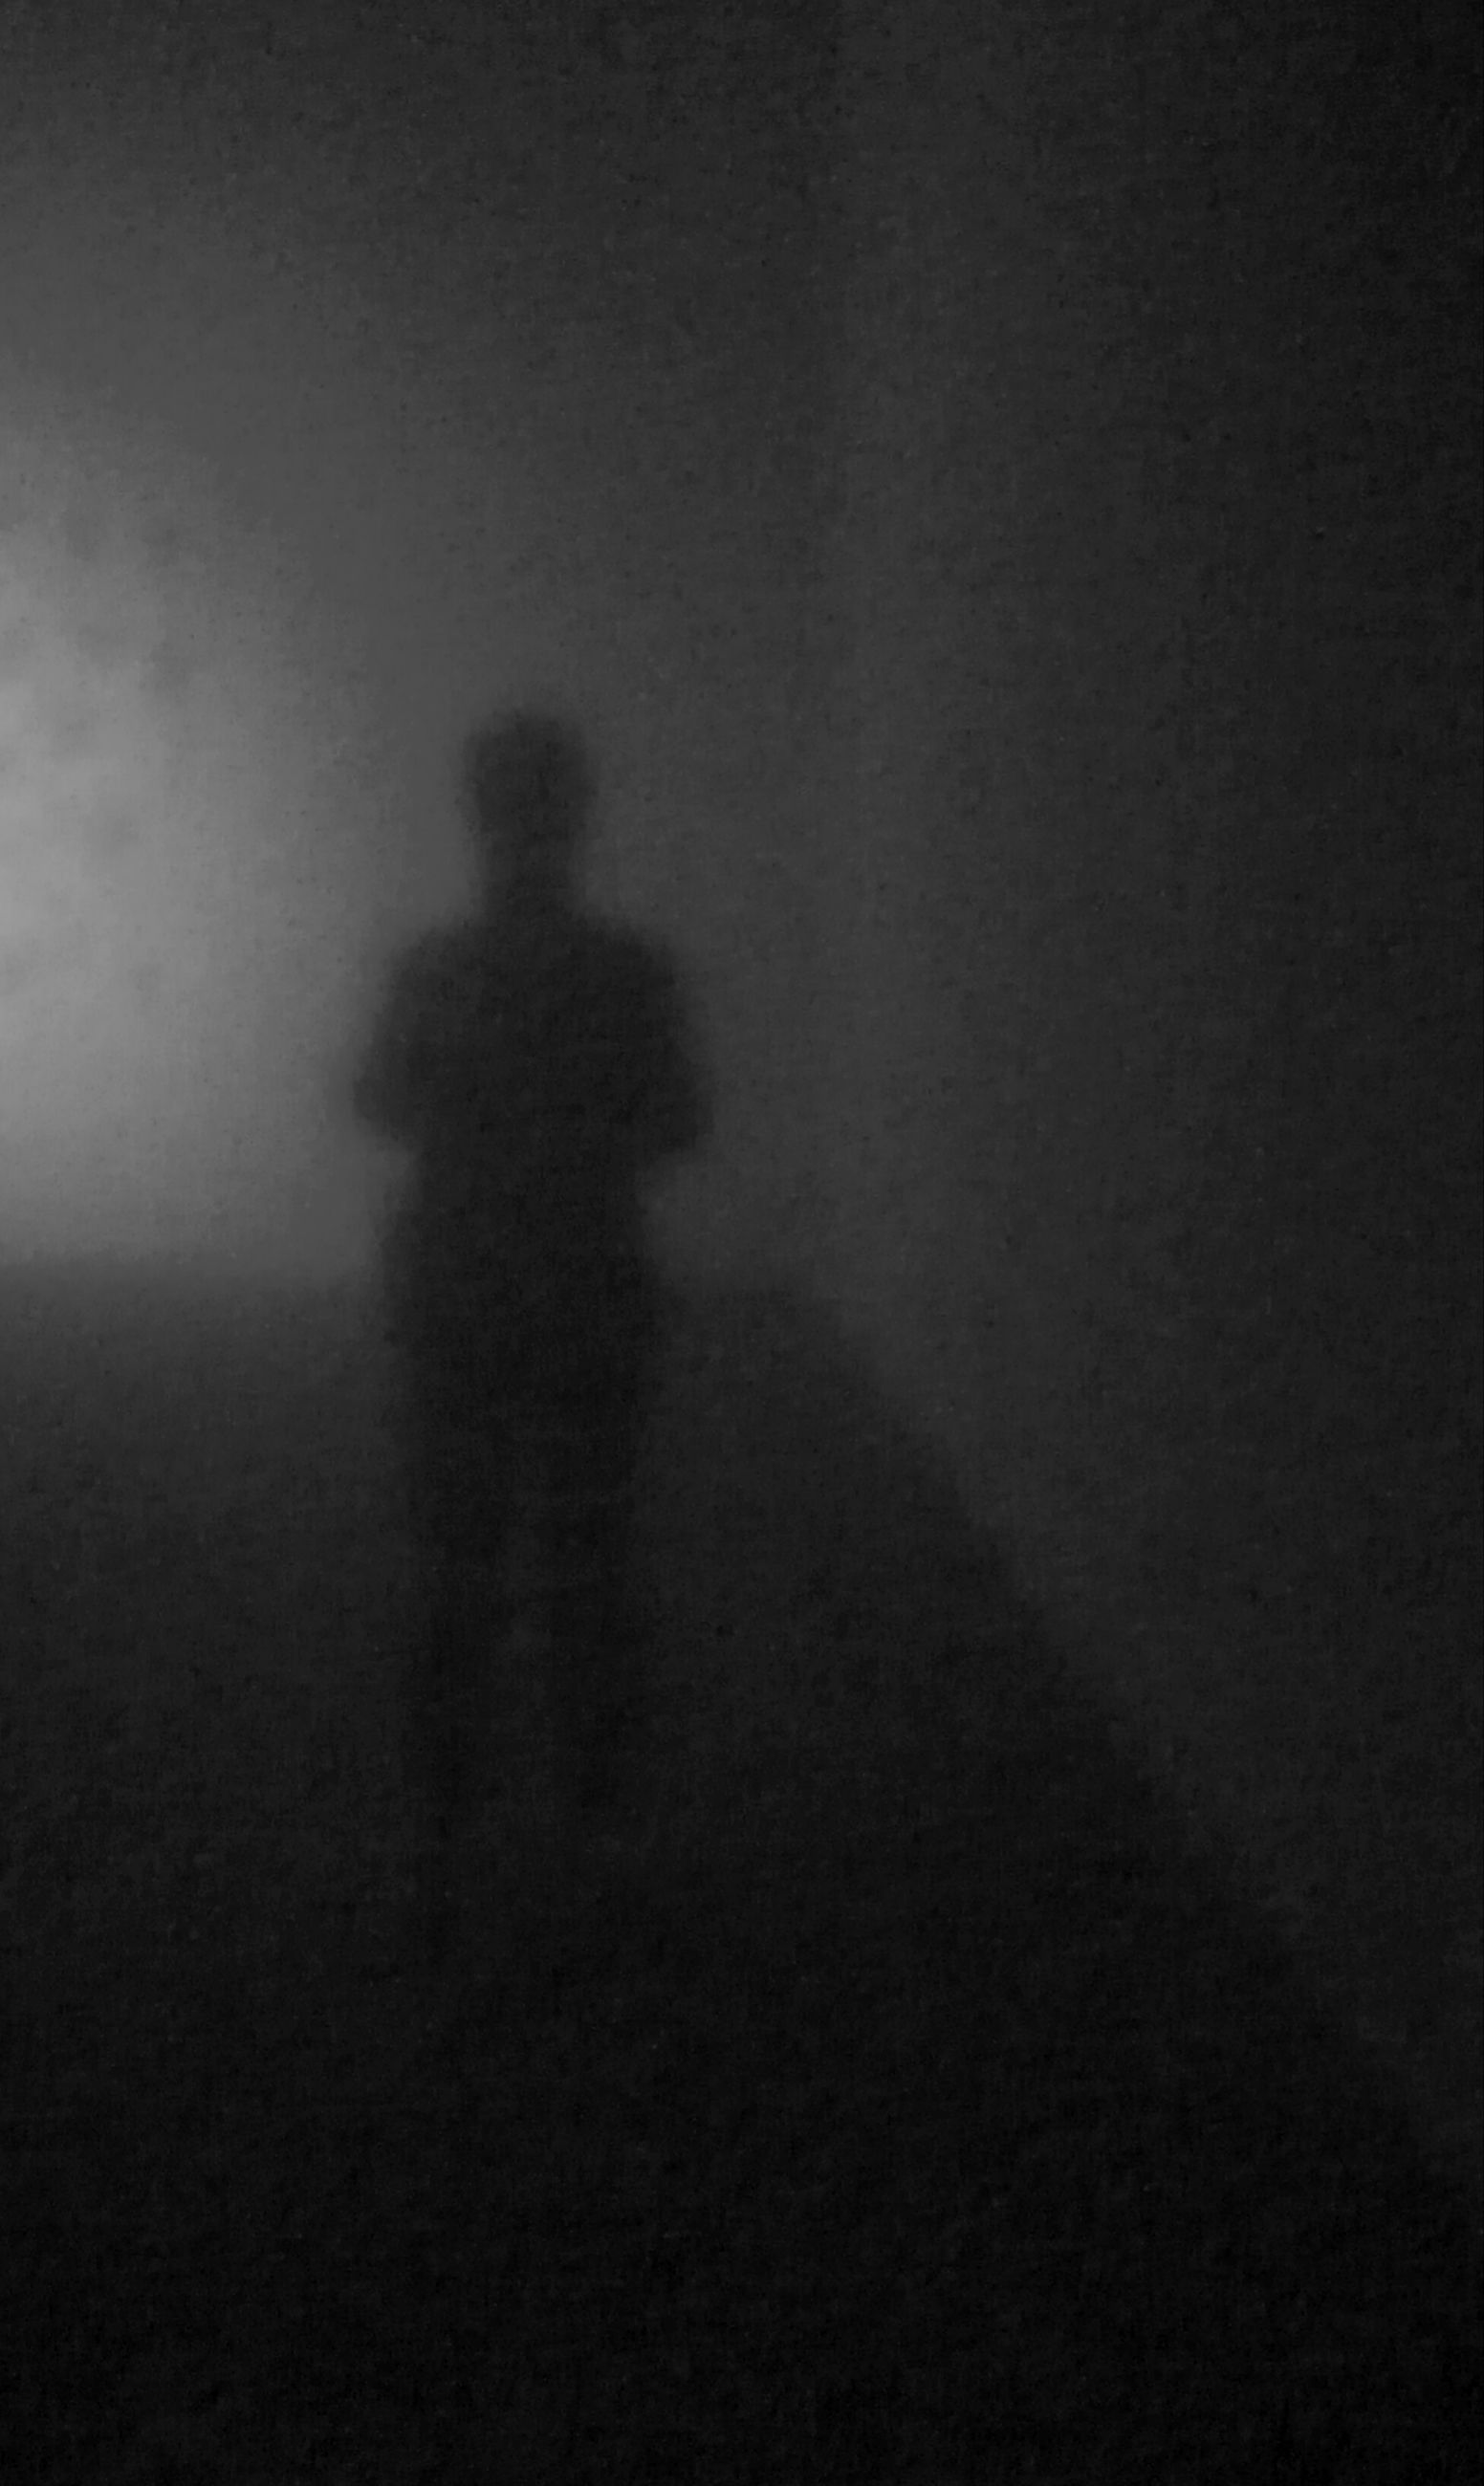 real people, focus on shadow, silhouette, one person, shadow, lifestyles, men, indoors, leisure activity, standing, day, people, one man only, adult, adults only